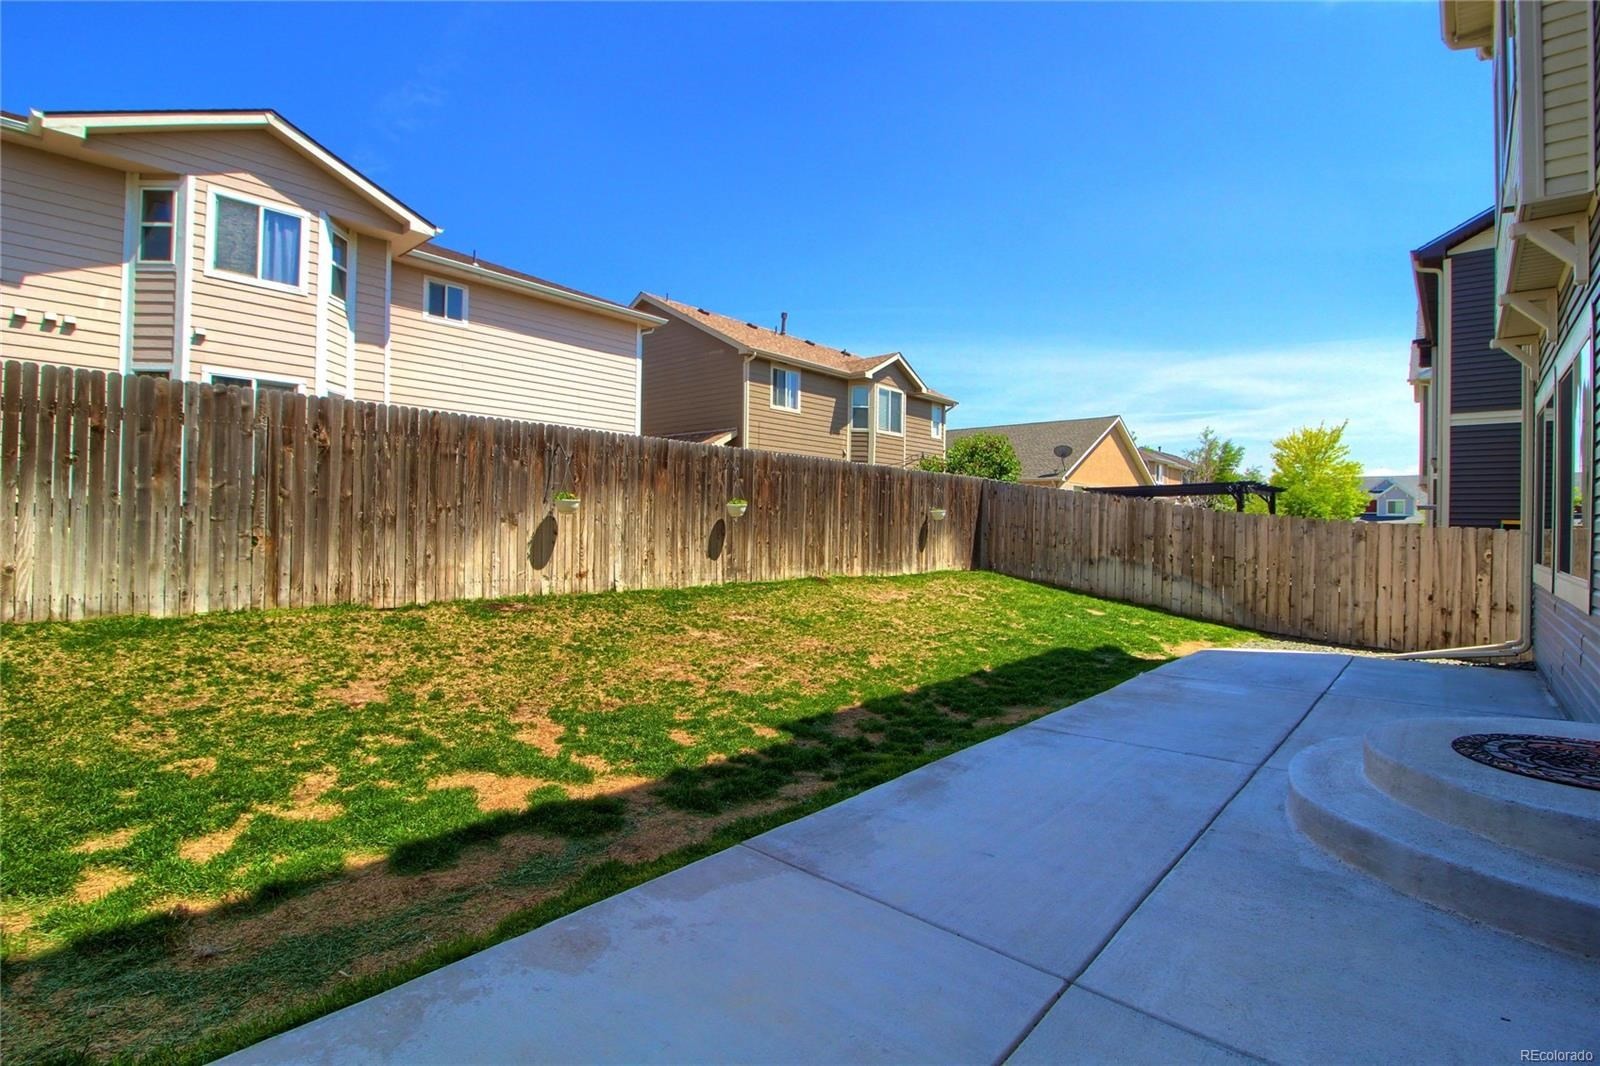 MLS# 3632664 - 37 - 10760 Worchester Way, Commerce City, CO 80022